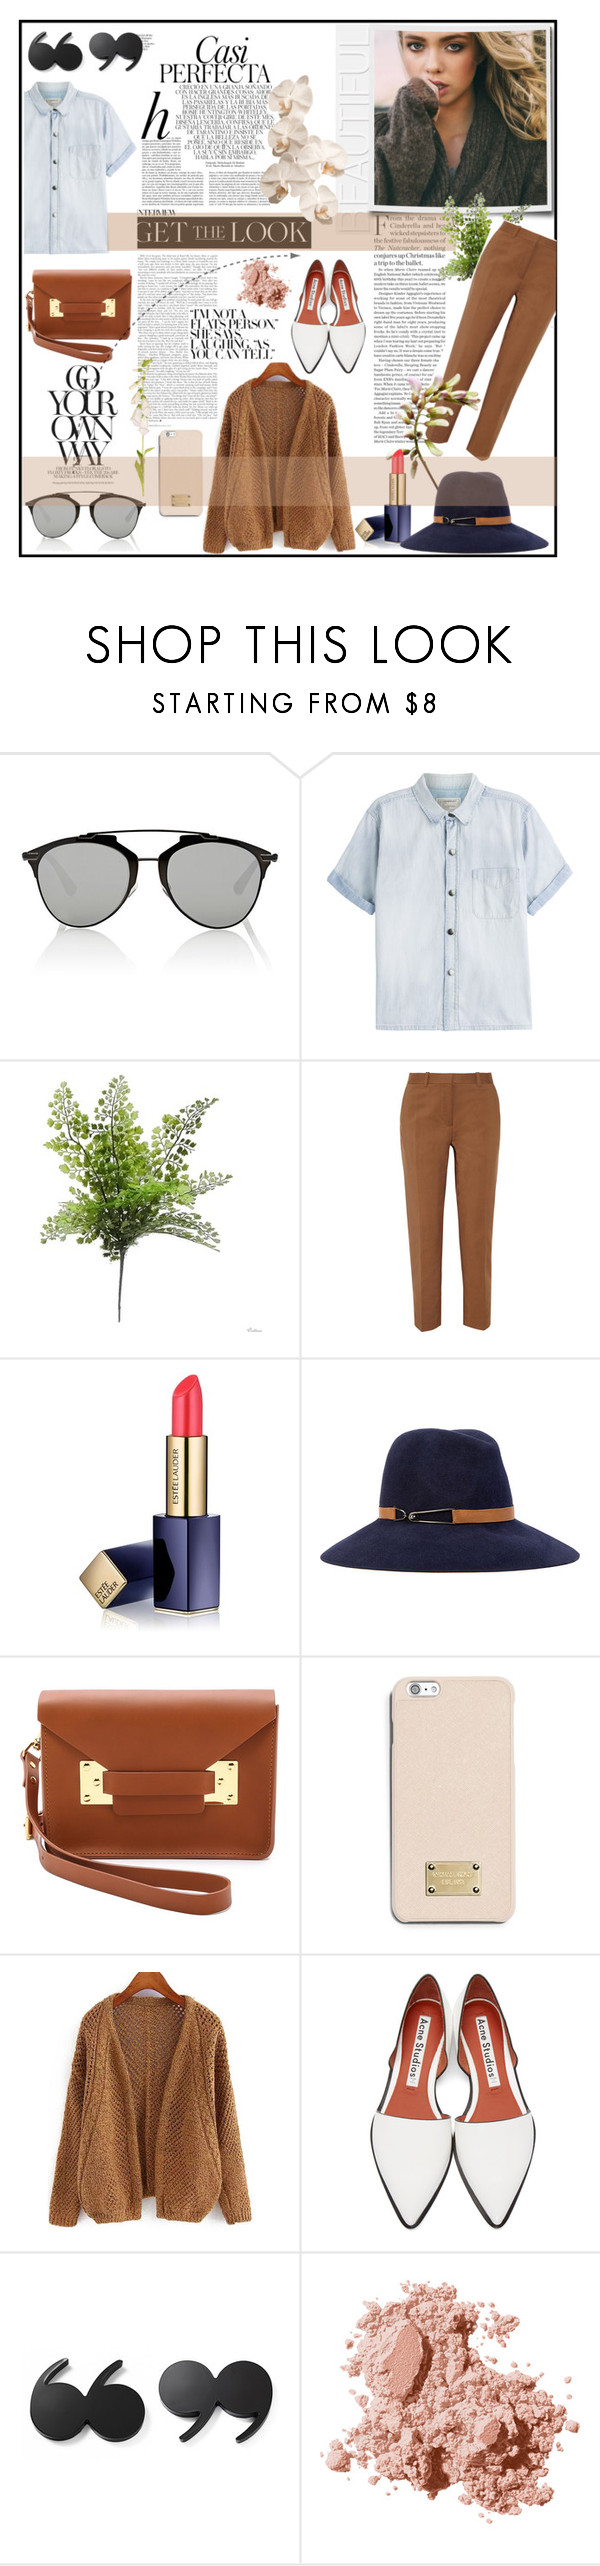 """Untitled #203"" by pink-powder ❤ liked on Polyvore featuring Whiteley, Chanel, Christian Dior, Current/Elliott, 3.1 Phillip Lim, Estée Lauder, Eugenia Kim, Sophie Hulme, MICHAEL Michael Kors and Acne Studios"